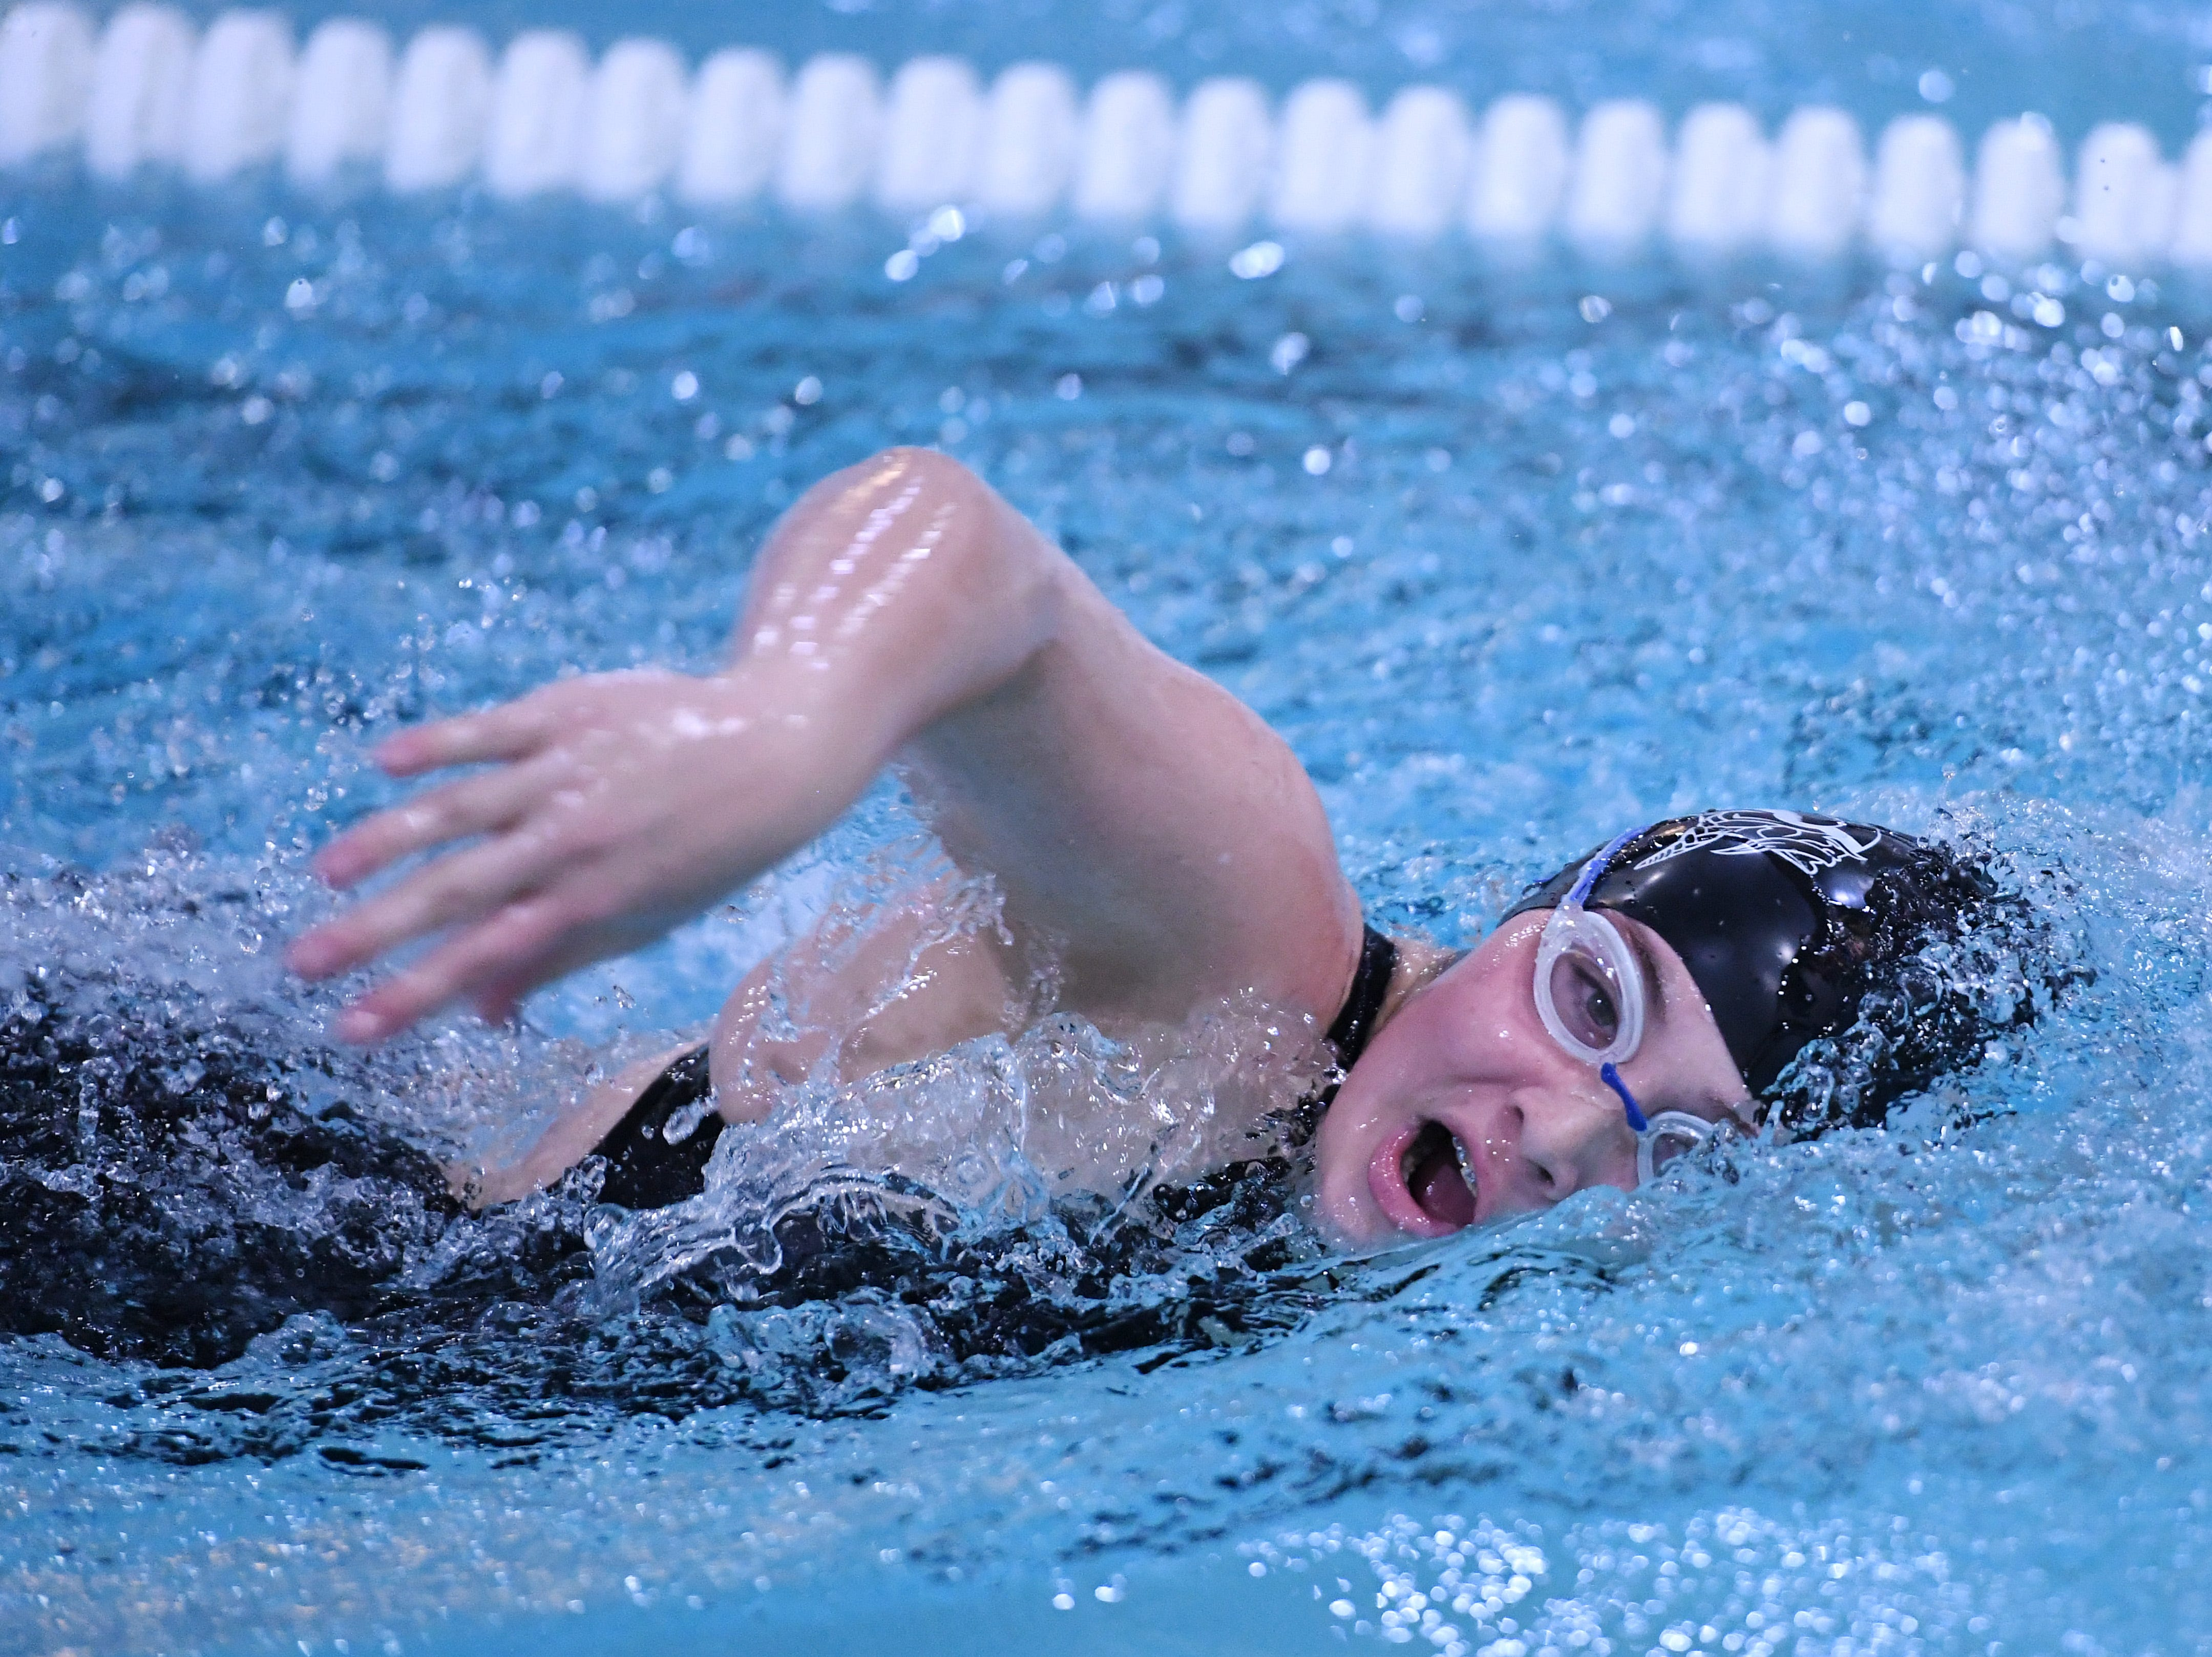 Morris County Swimming Championships at Morristown High School on Saturday, January 26, 2019. Reagan Moffatt of Parsippany Hills in the Girls 400 SC Meter Freestyle.